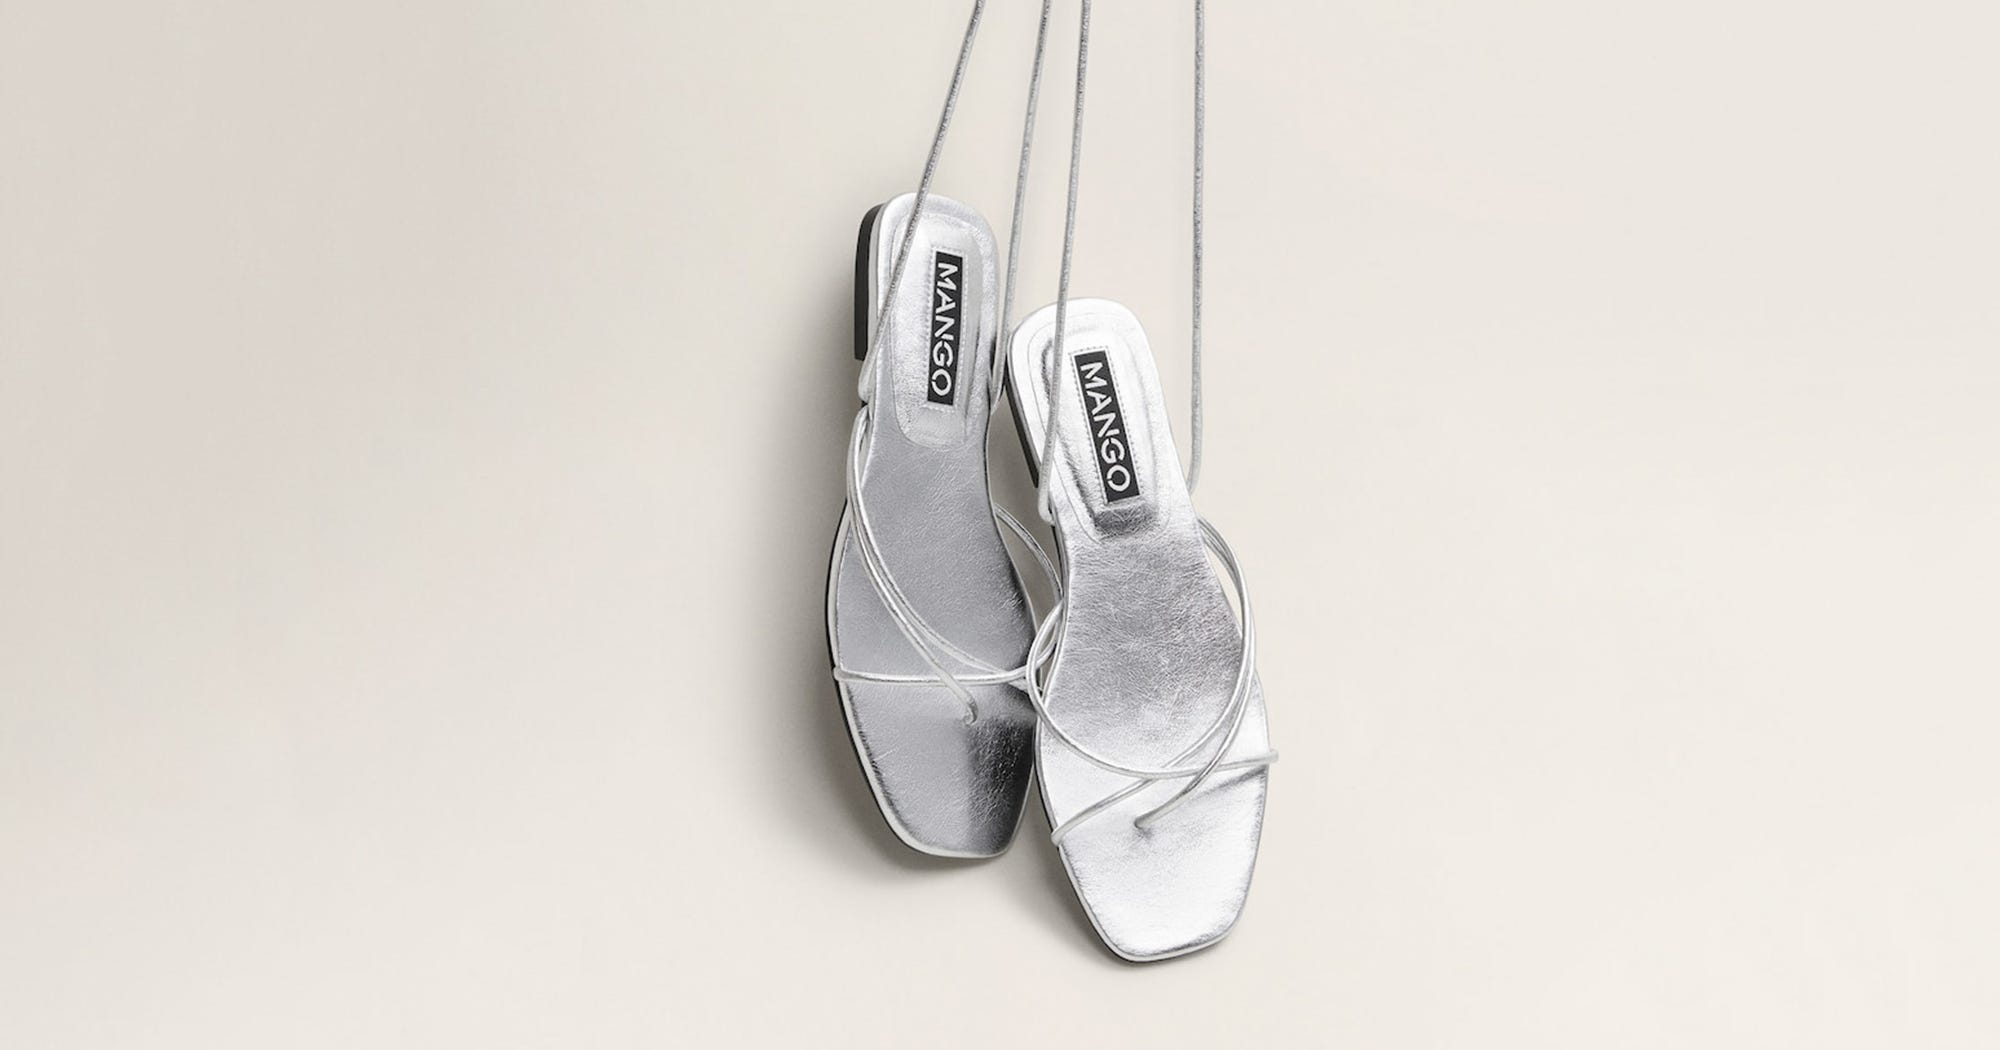 70b3576f7 Dressy Flat Sandals For Day-To-Night 2019 Spring-Summer